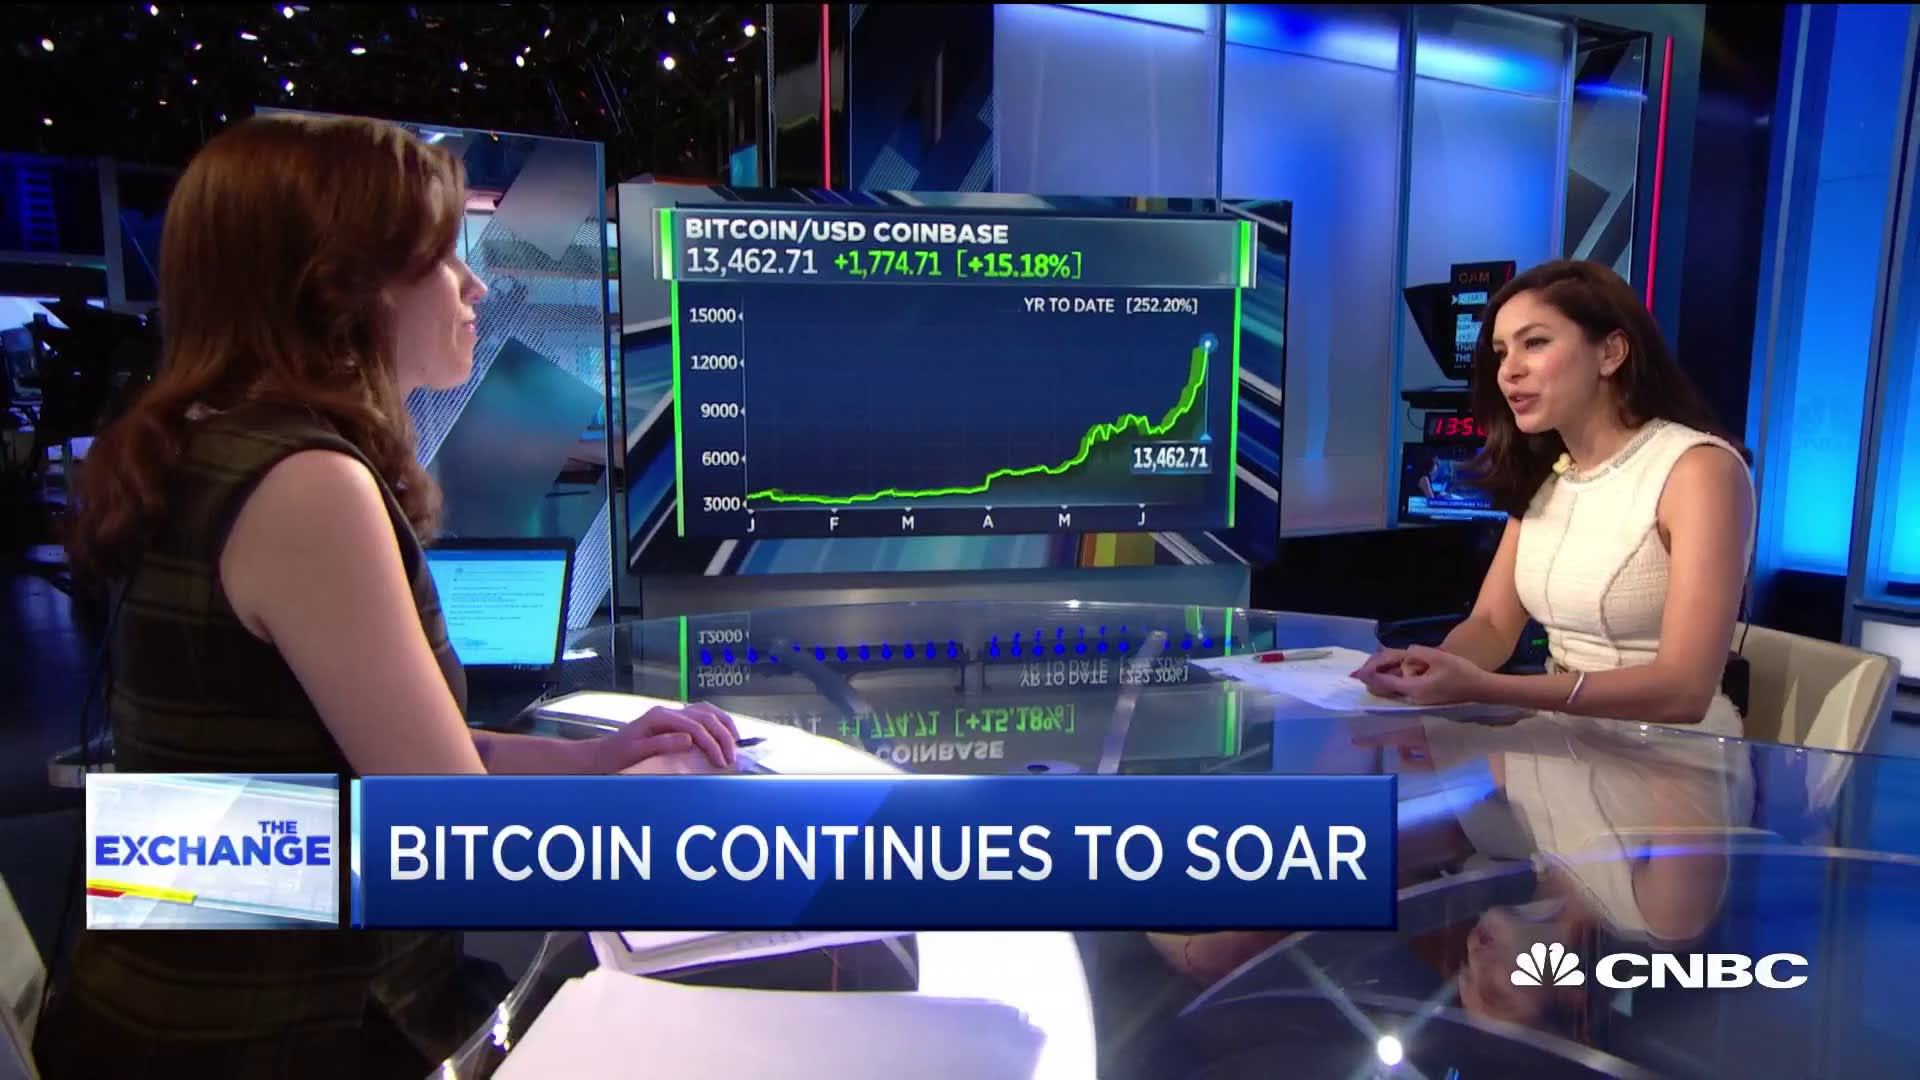 Bitcoin soars to 17-month high, but drops by $1,000 after US markets close